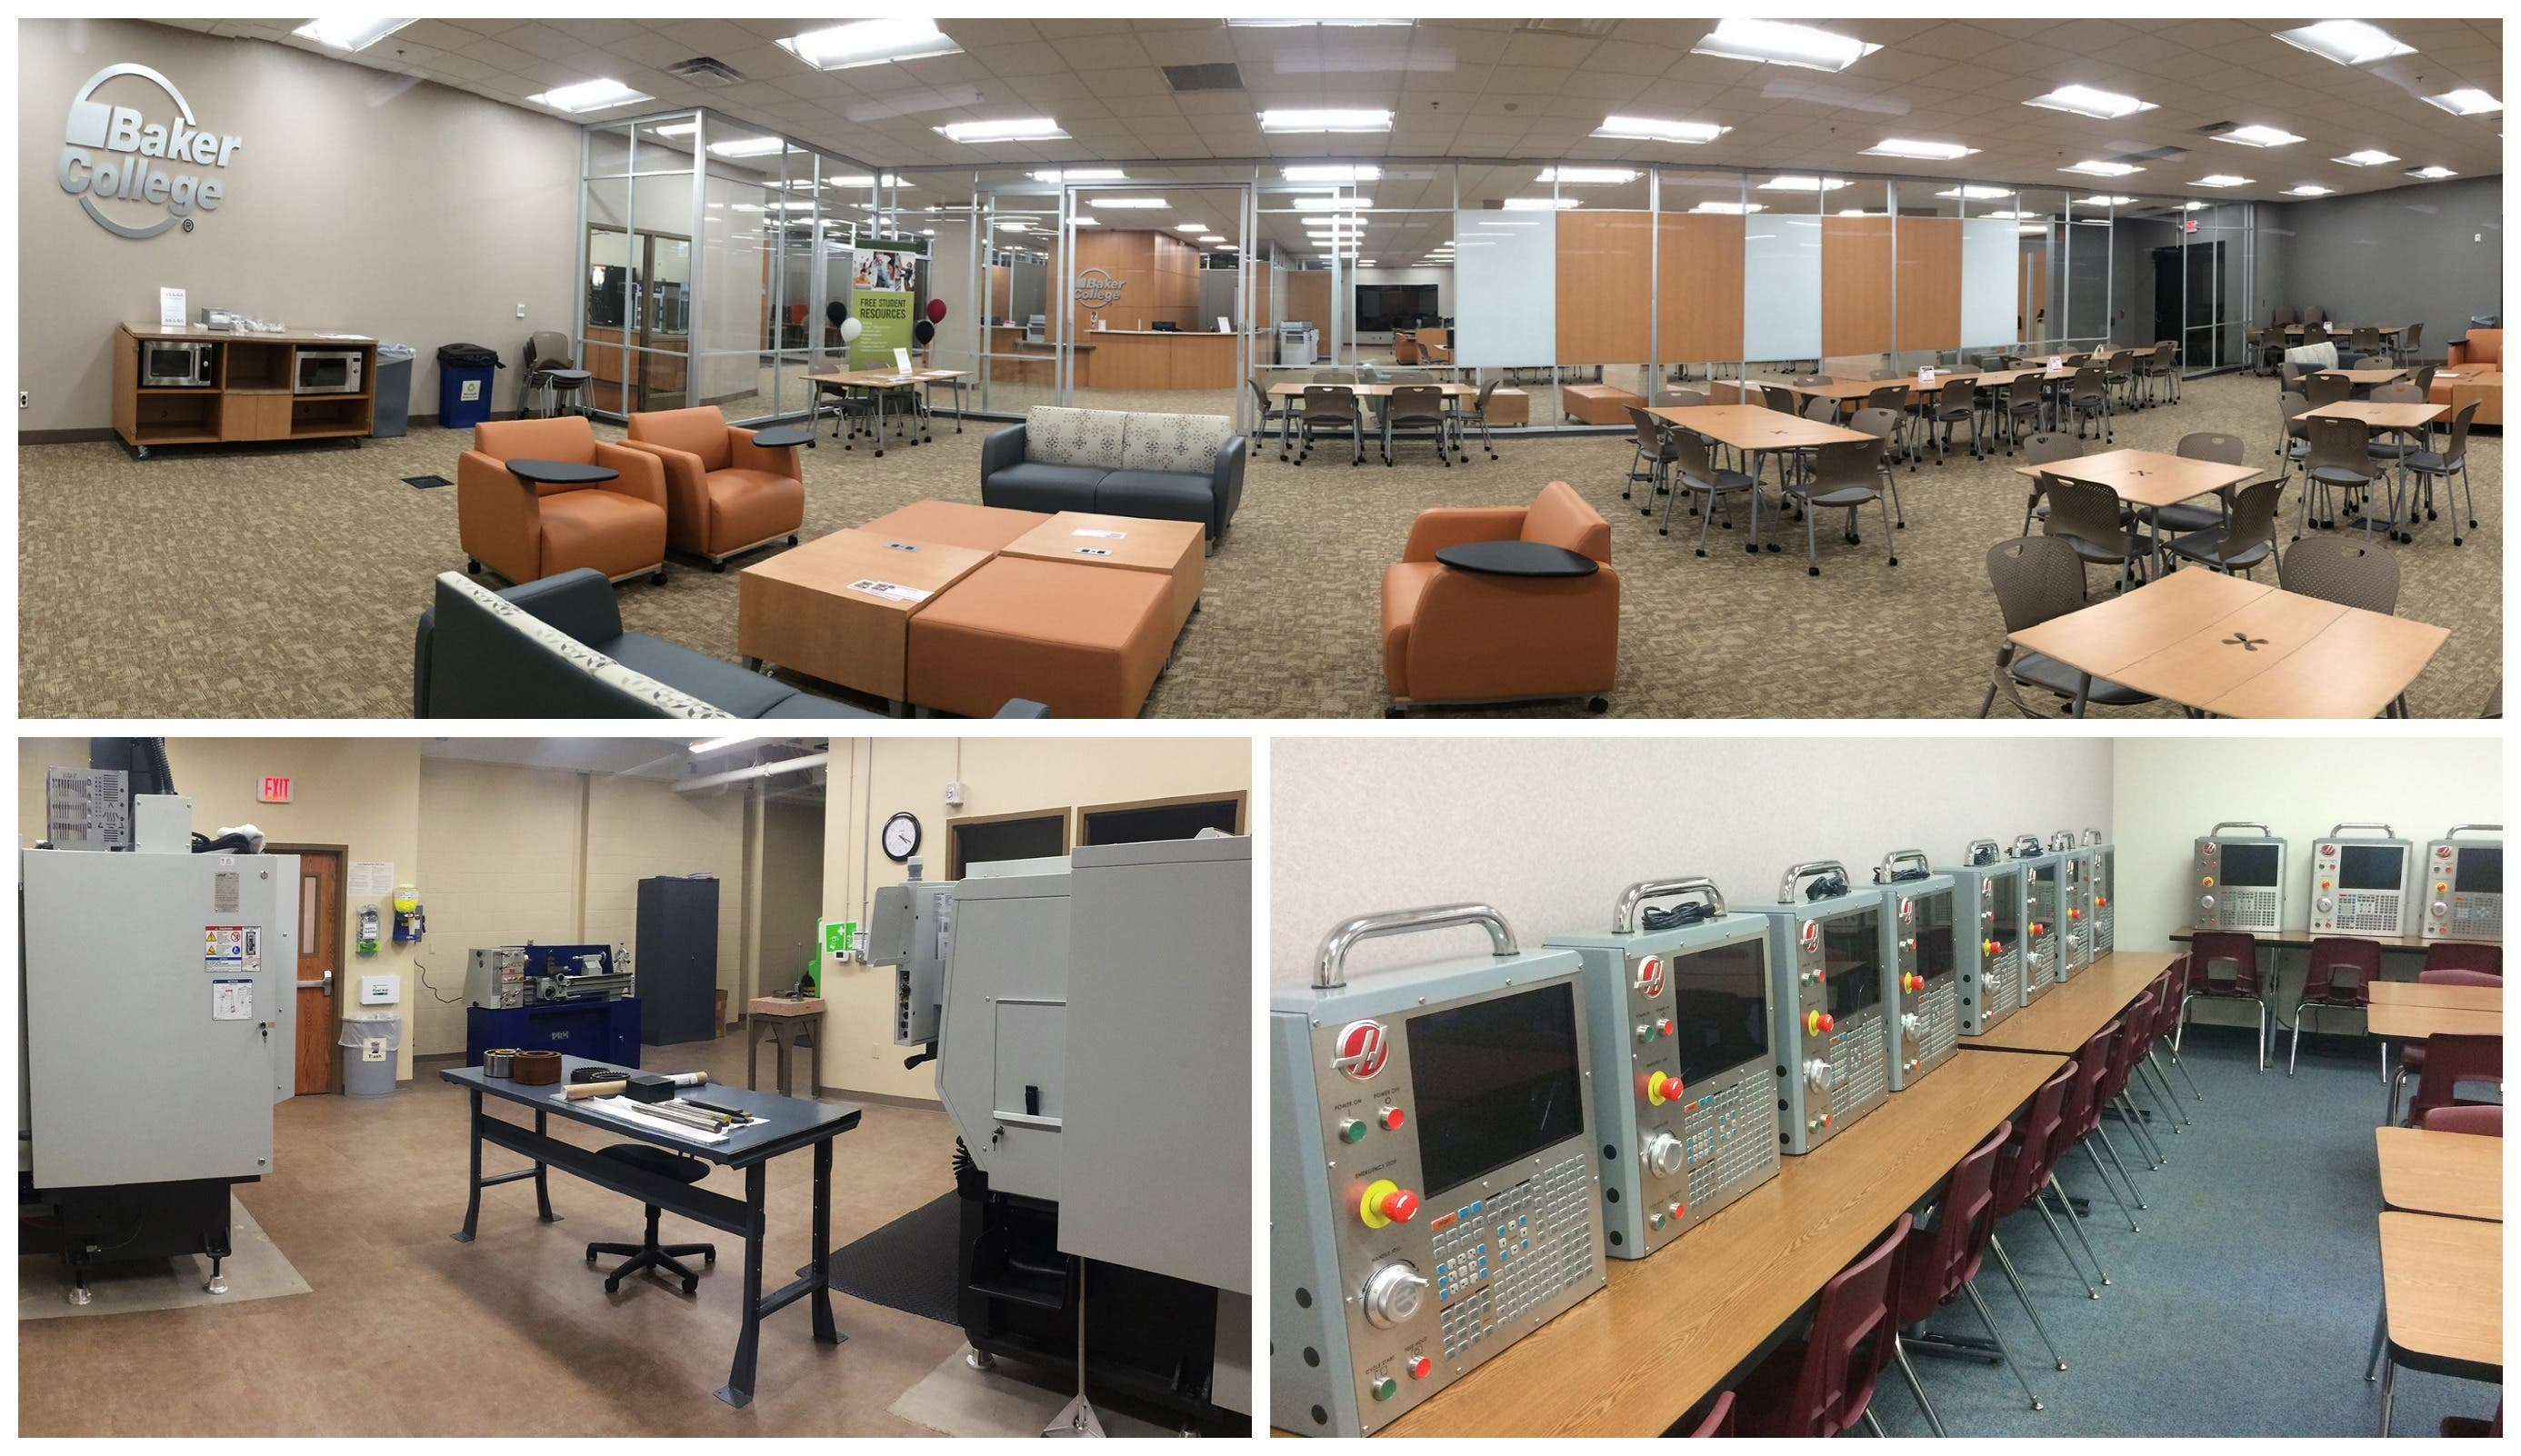 Baker College opens new academic resource center, manufacturing lab